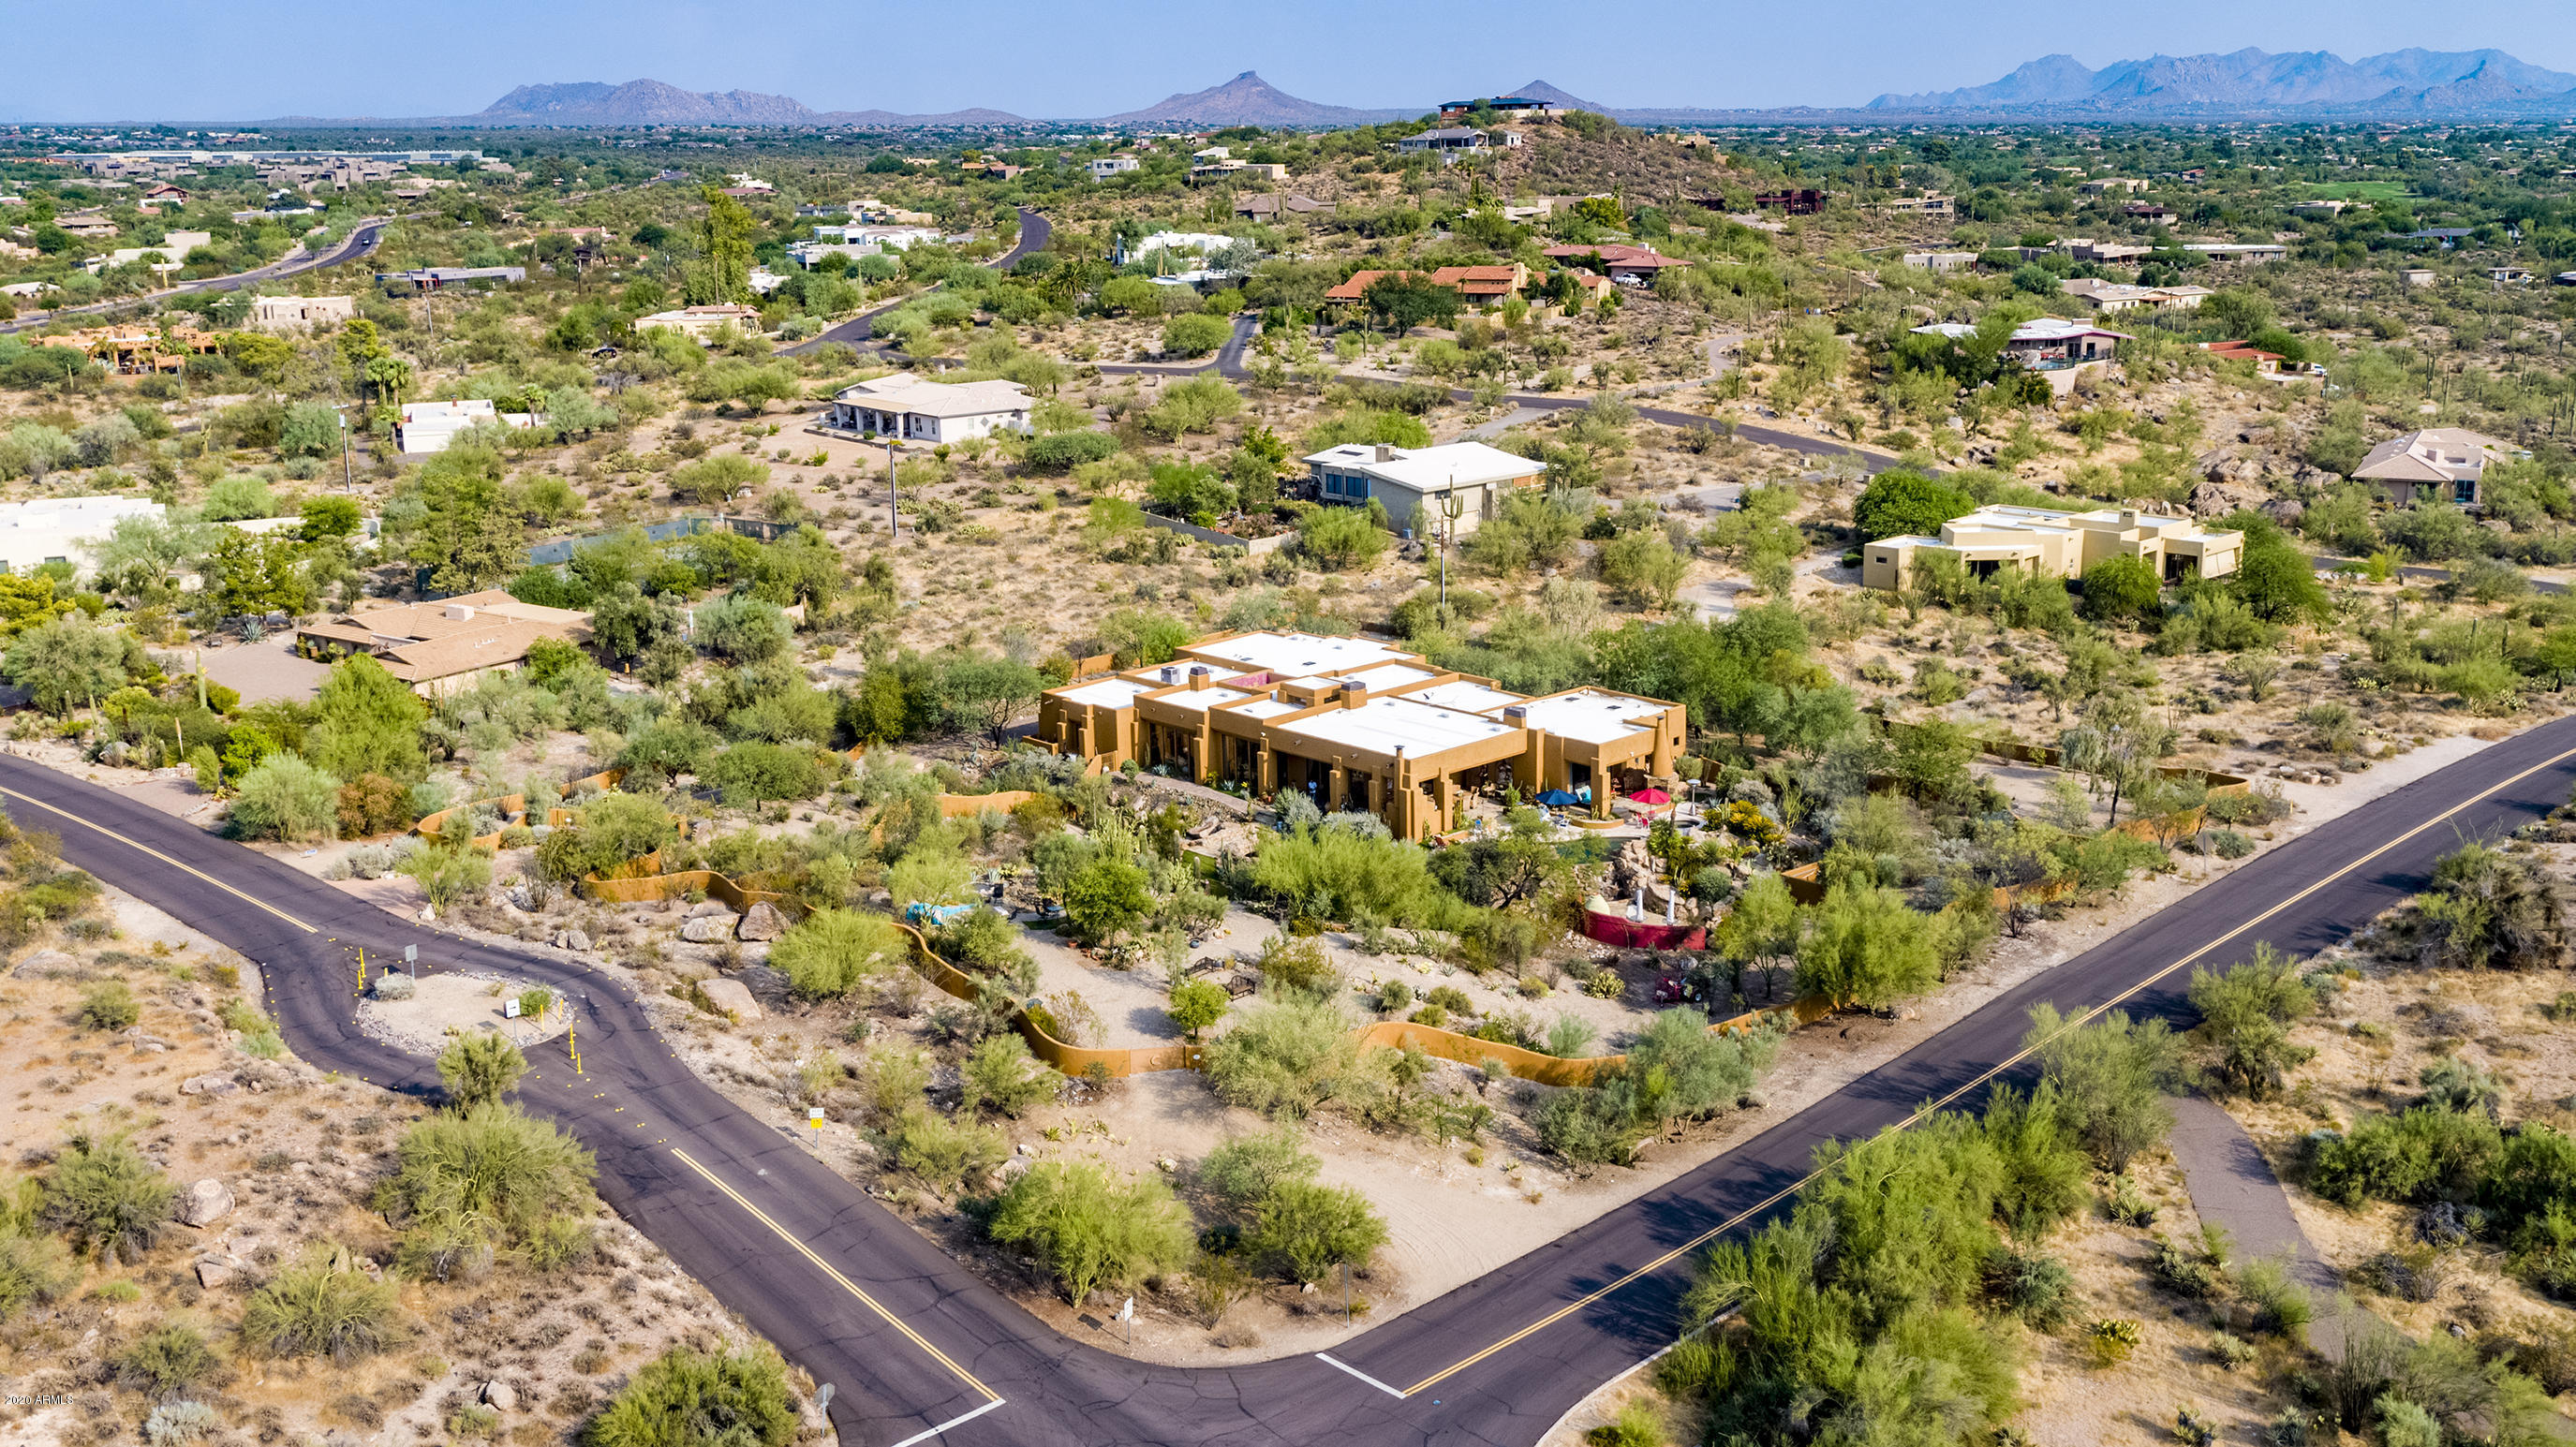 37075 BLOODY BASIN Road, Carefree, Arizona 85377, 4 Bedrooms Bedrooms, ,6 BathroomsBathrooms,Residential,For Sale,BLOODY BASIN,6131650